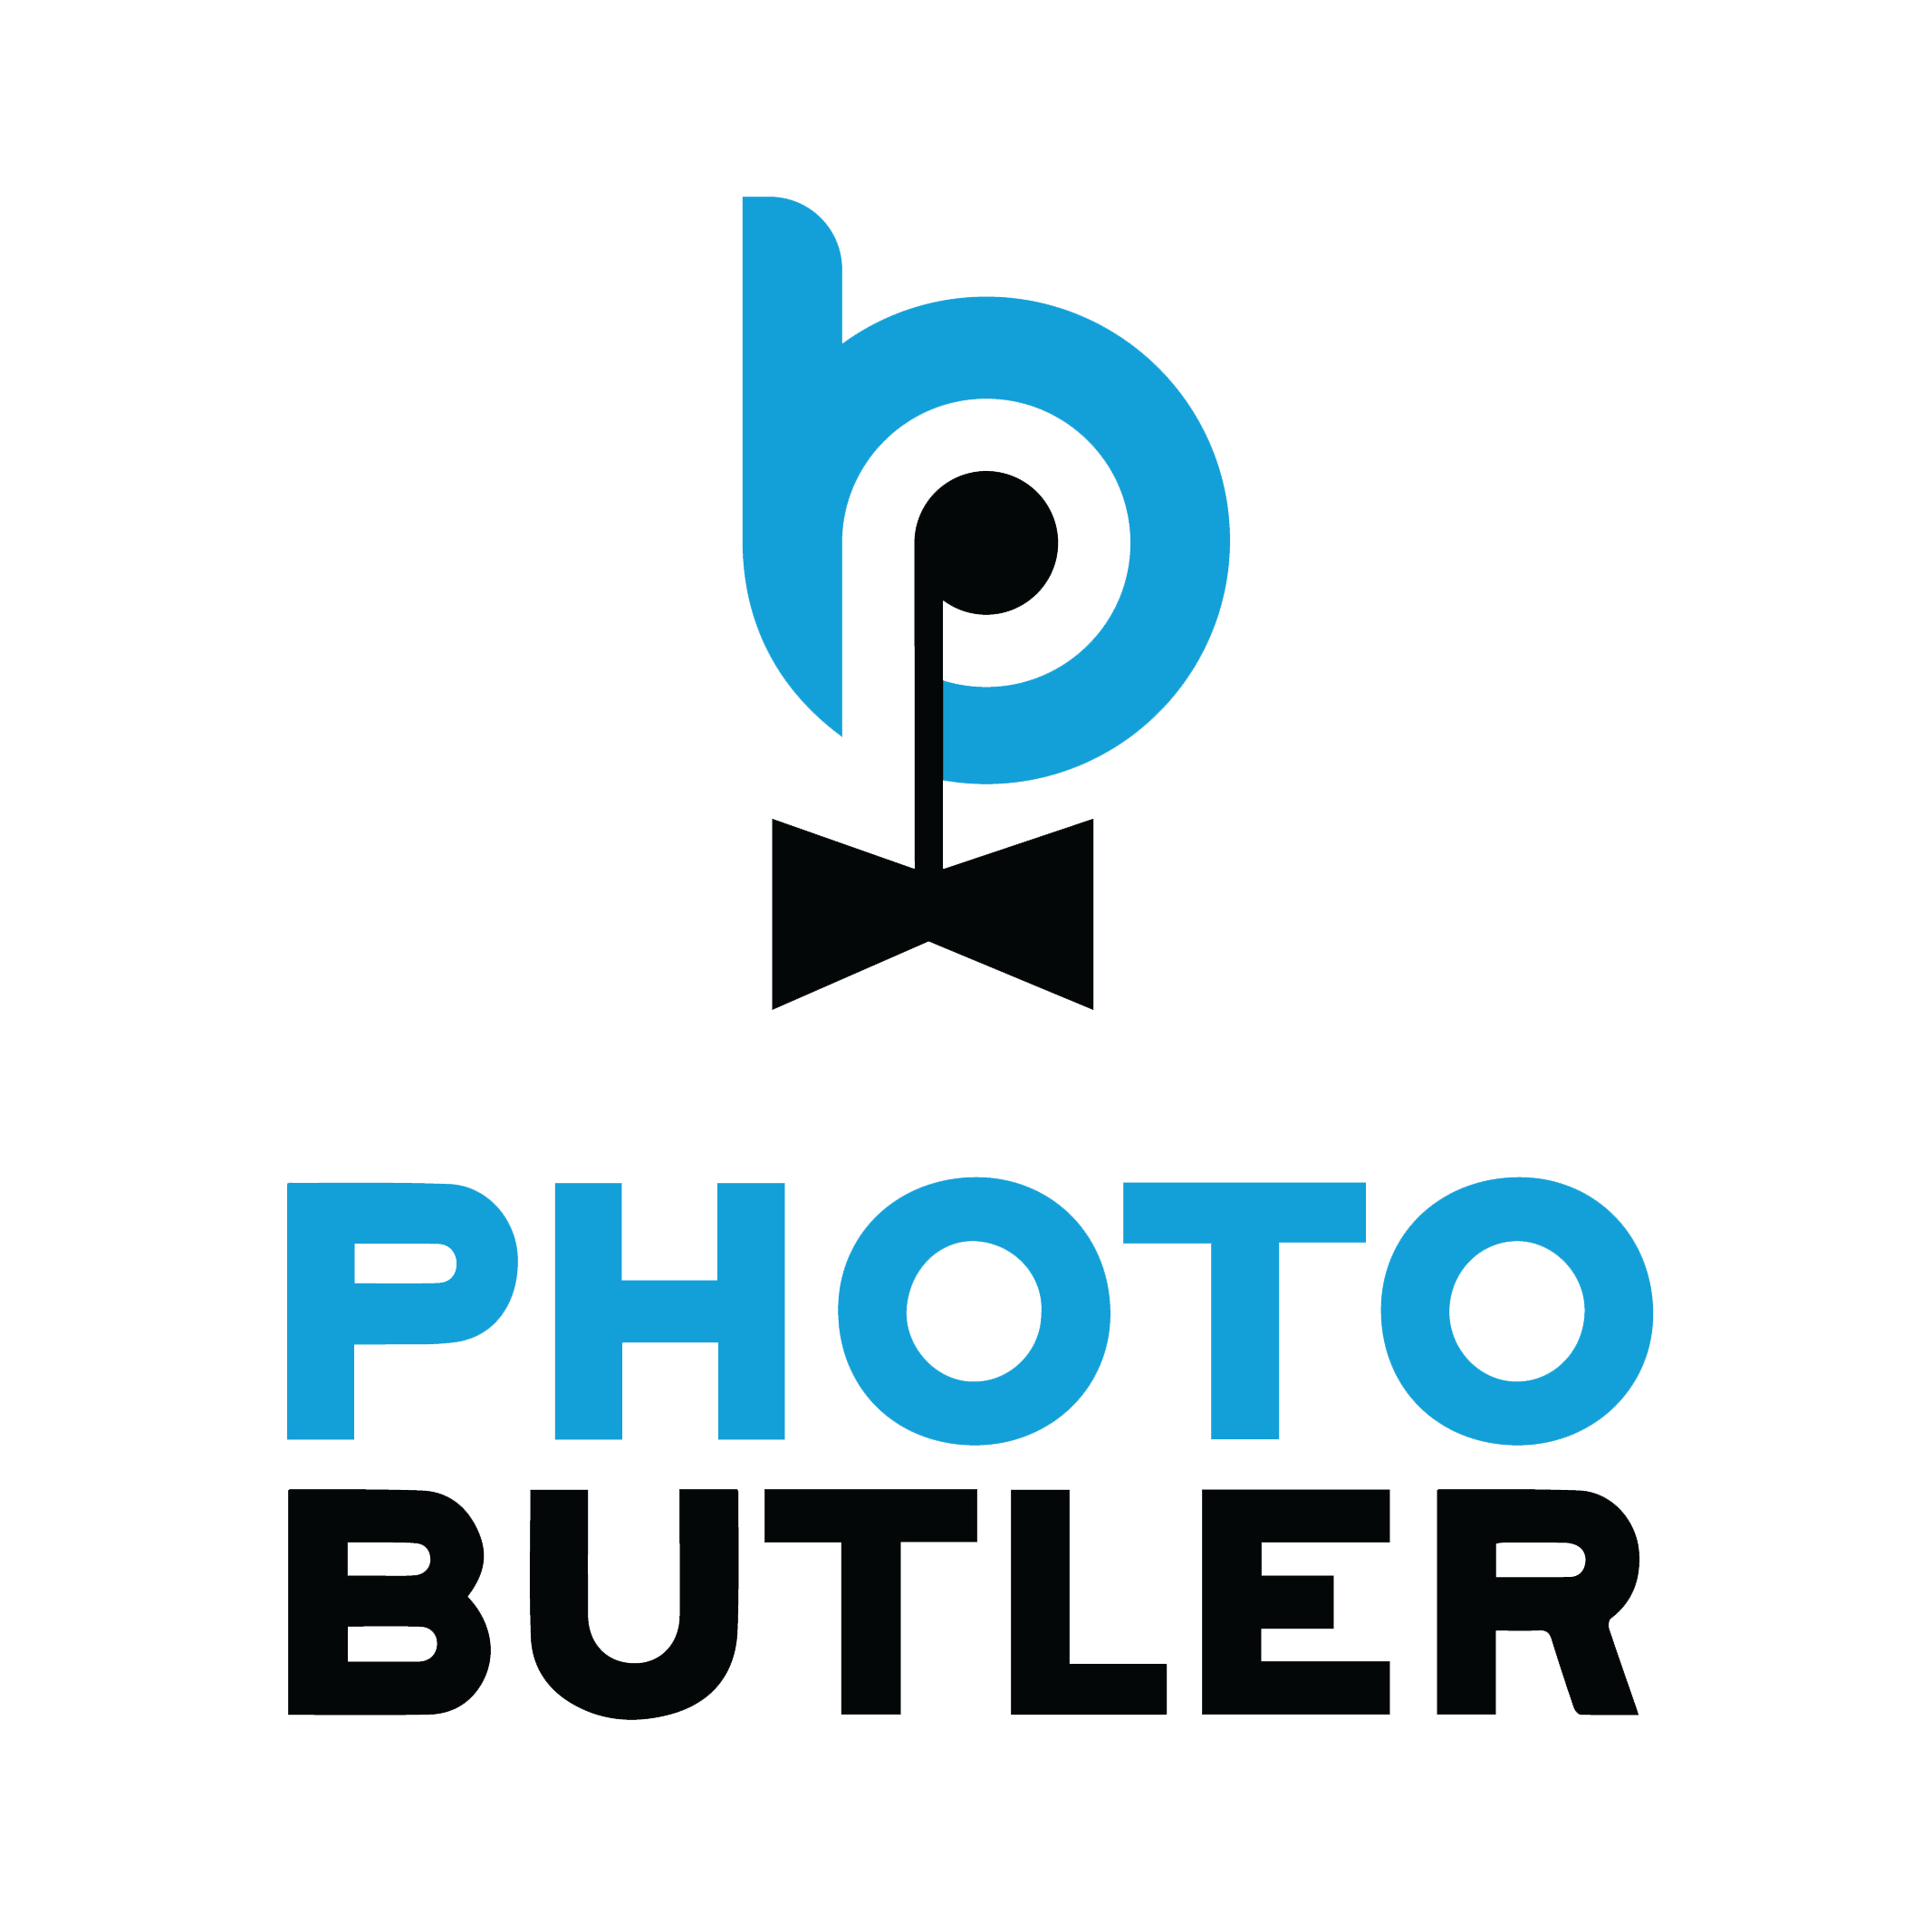 pb_logo_REV-color_rounded copy_no background.png